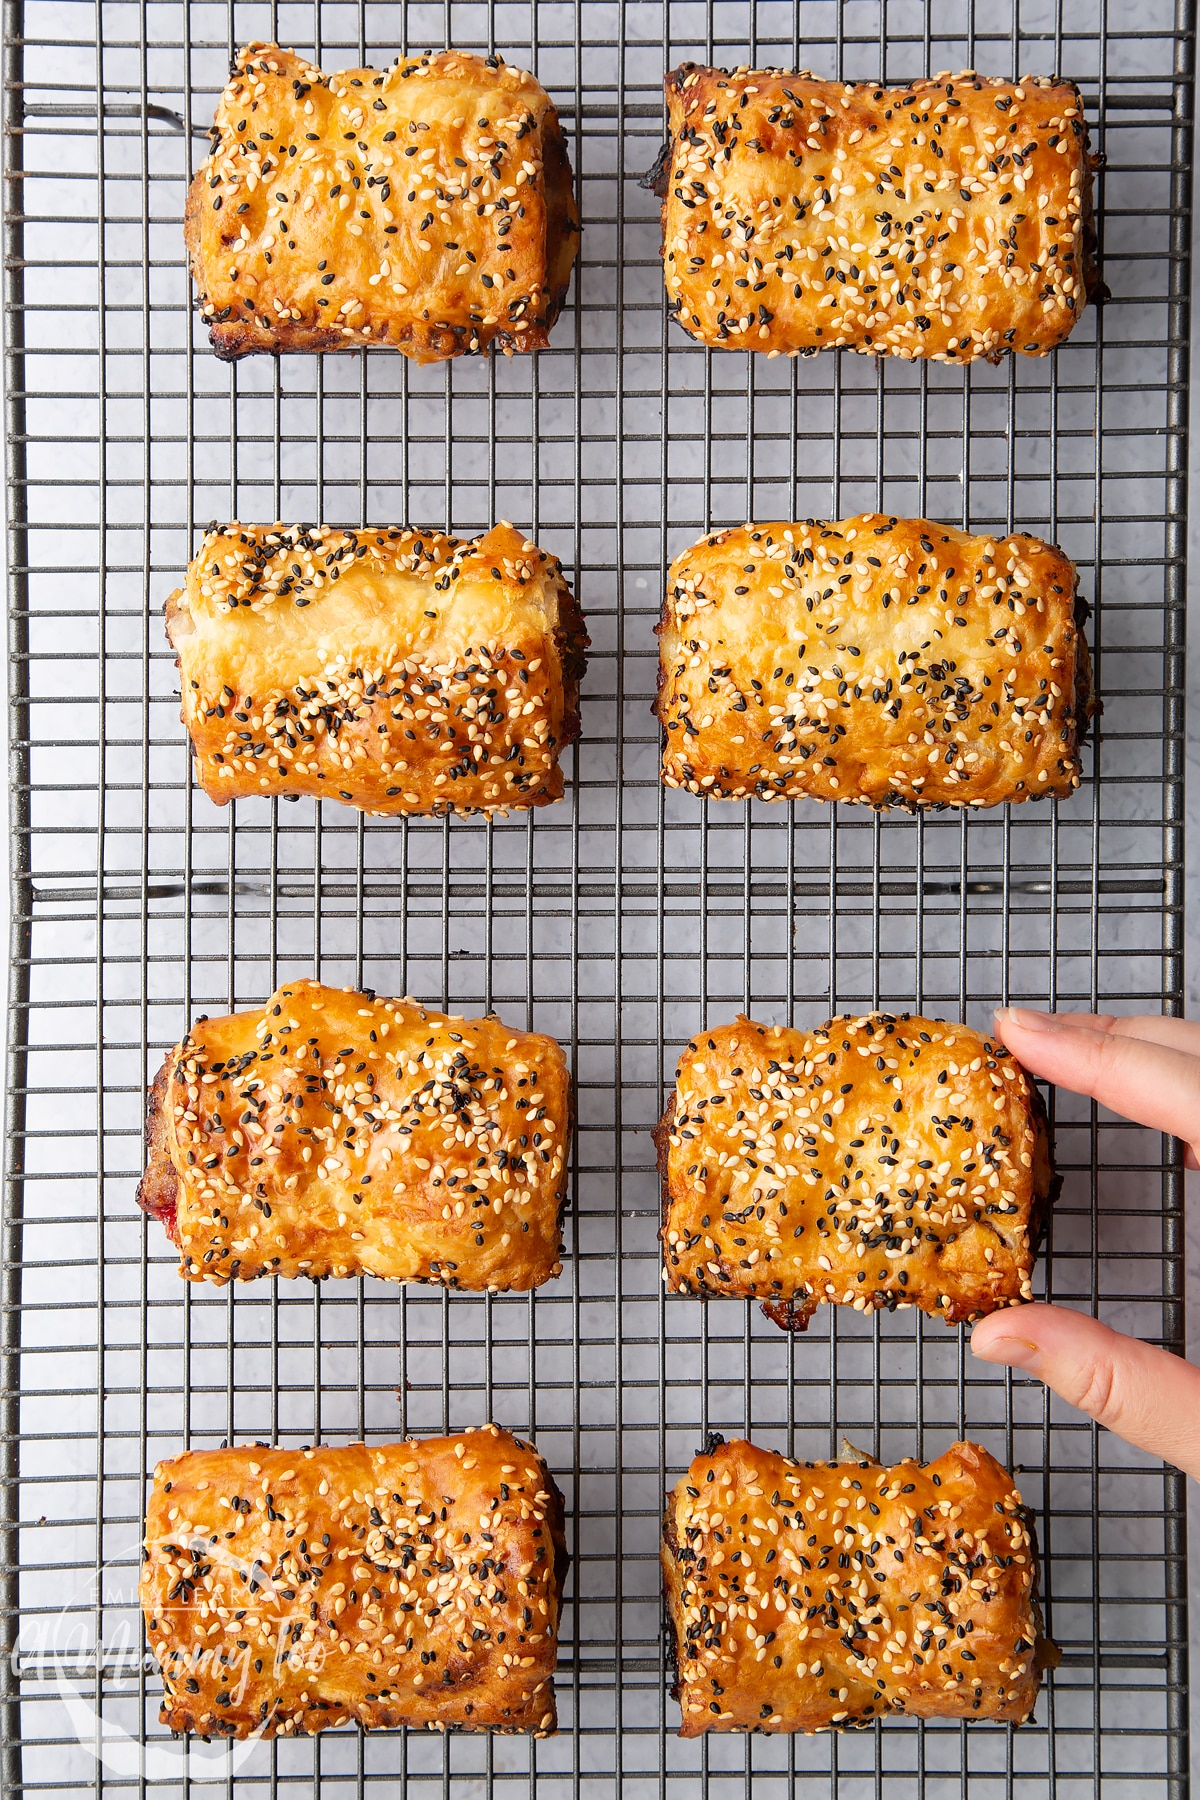 Festive sausage rolls on a wire cooling rack. A hand reaches for one.